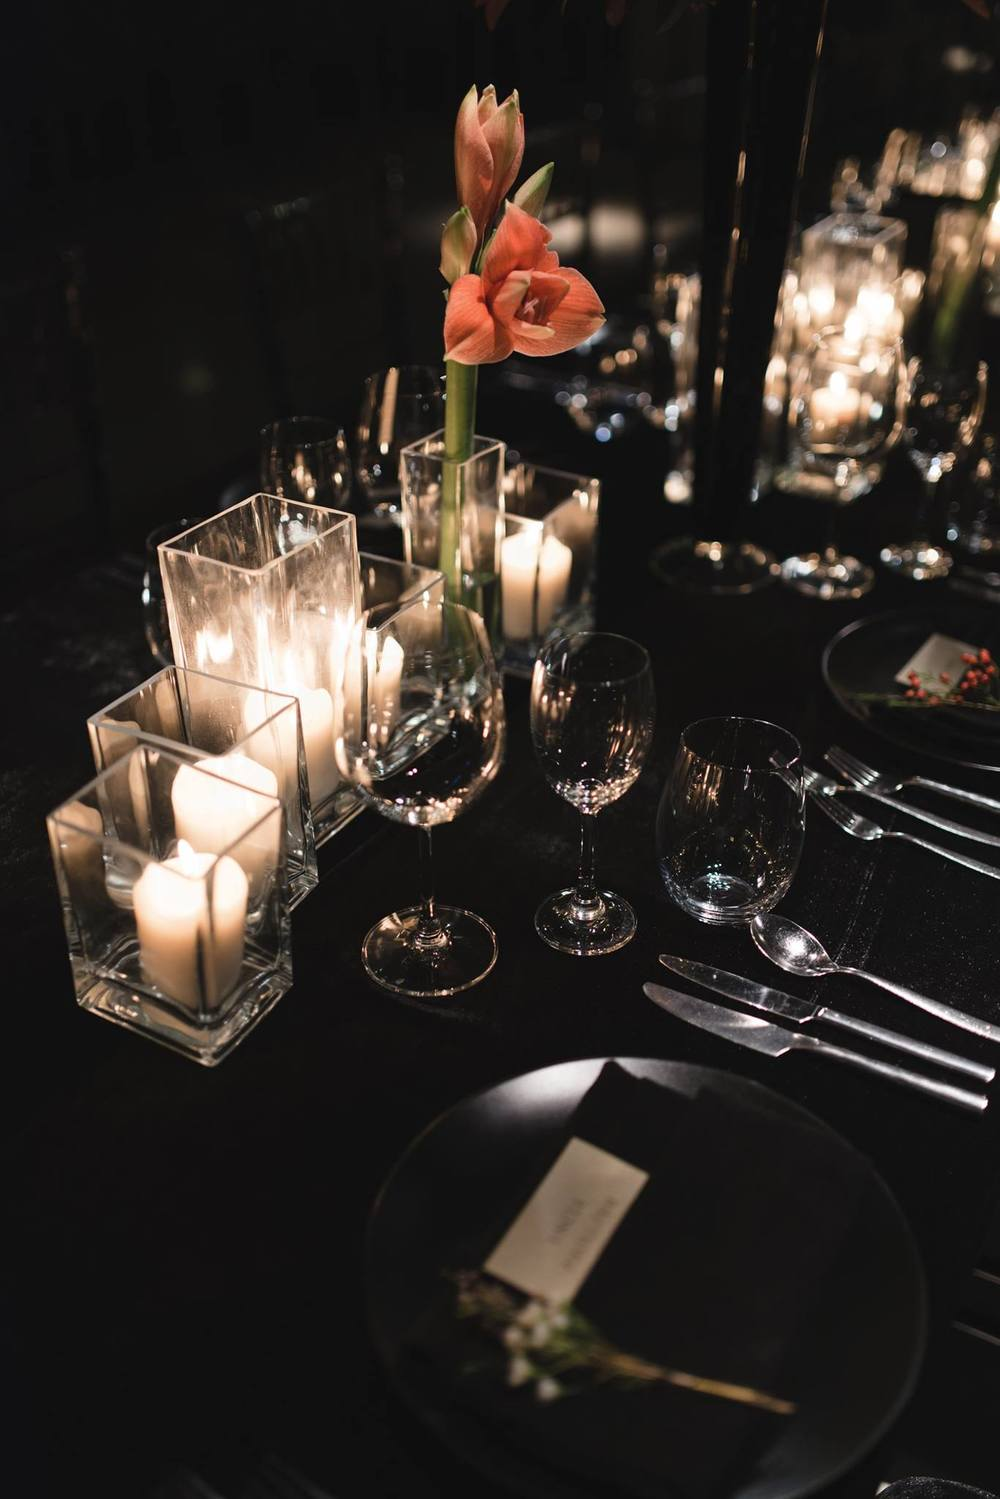 Table setting for 8-course dinner